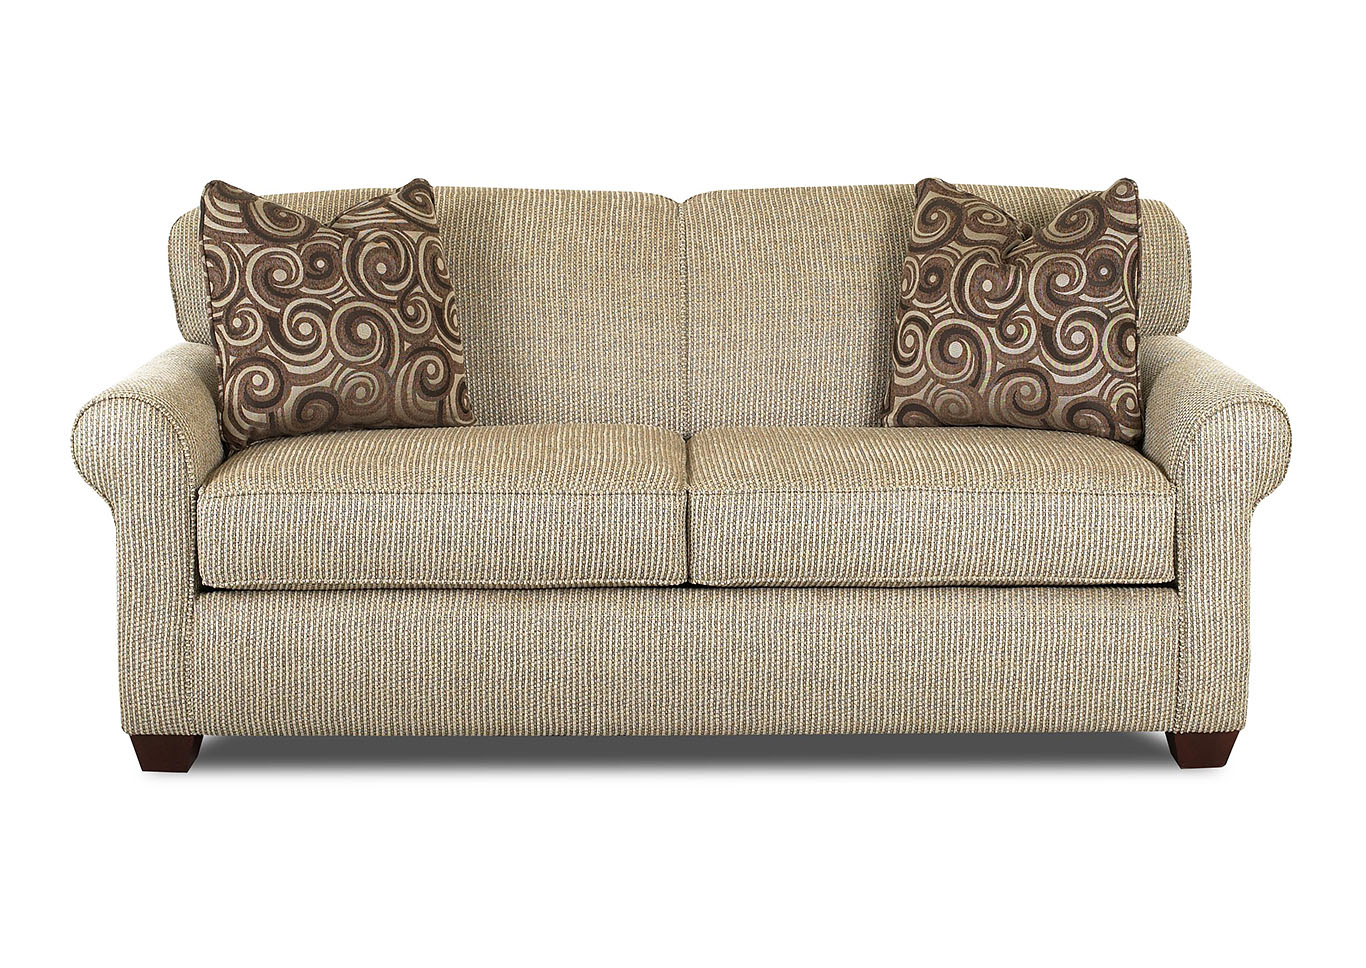 Mayhew Tan Stationary Fabric Sofa,Klaussner Home Furnishings